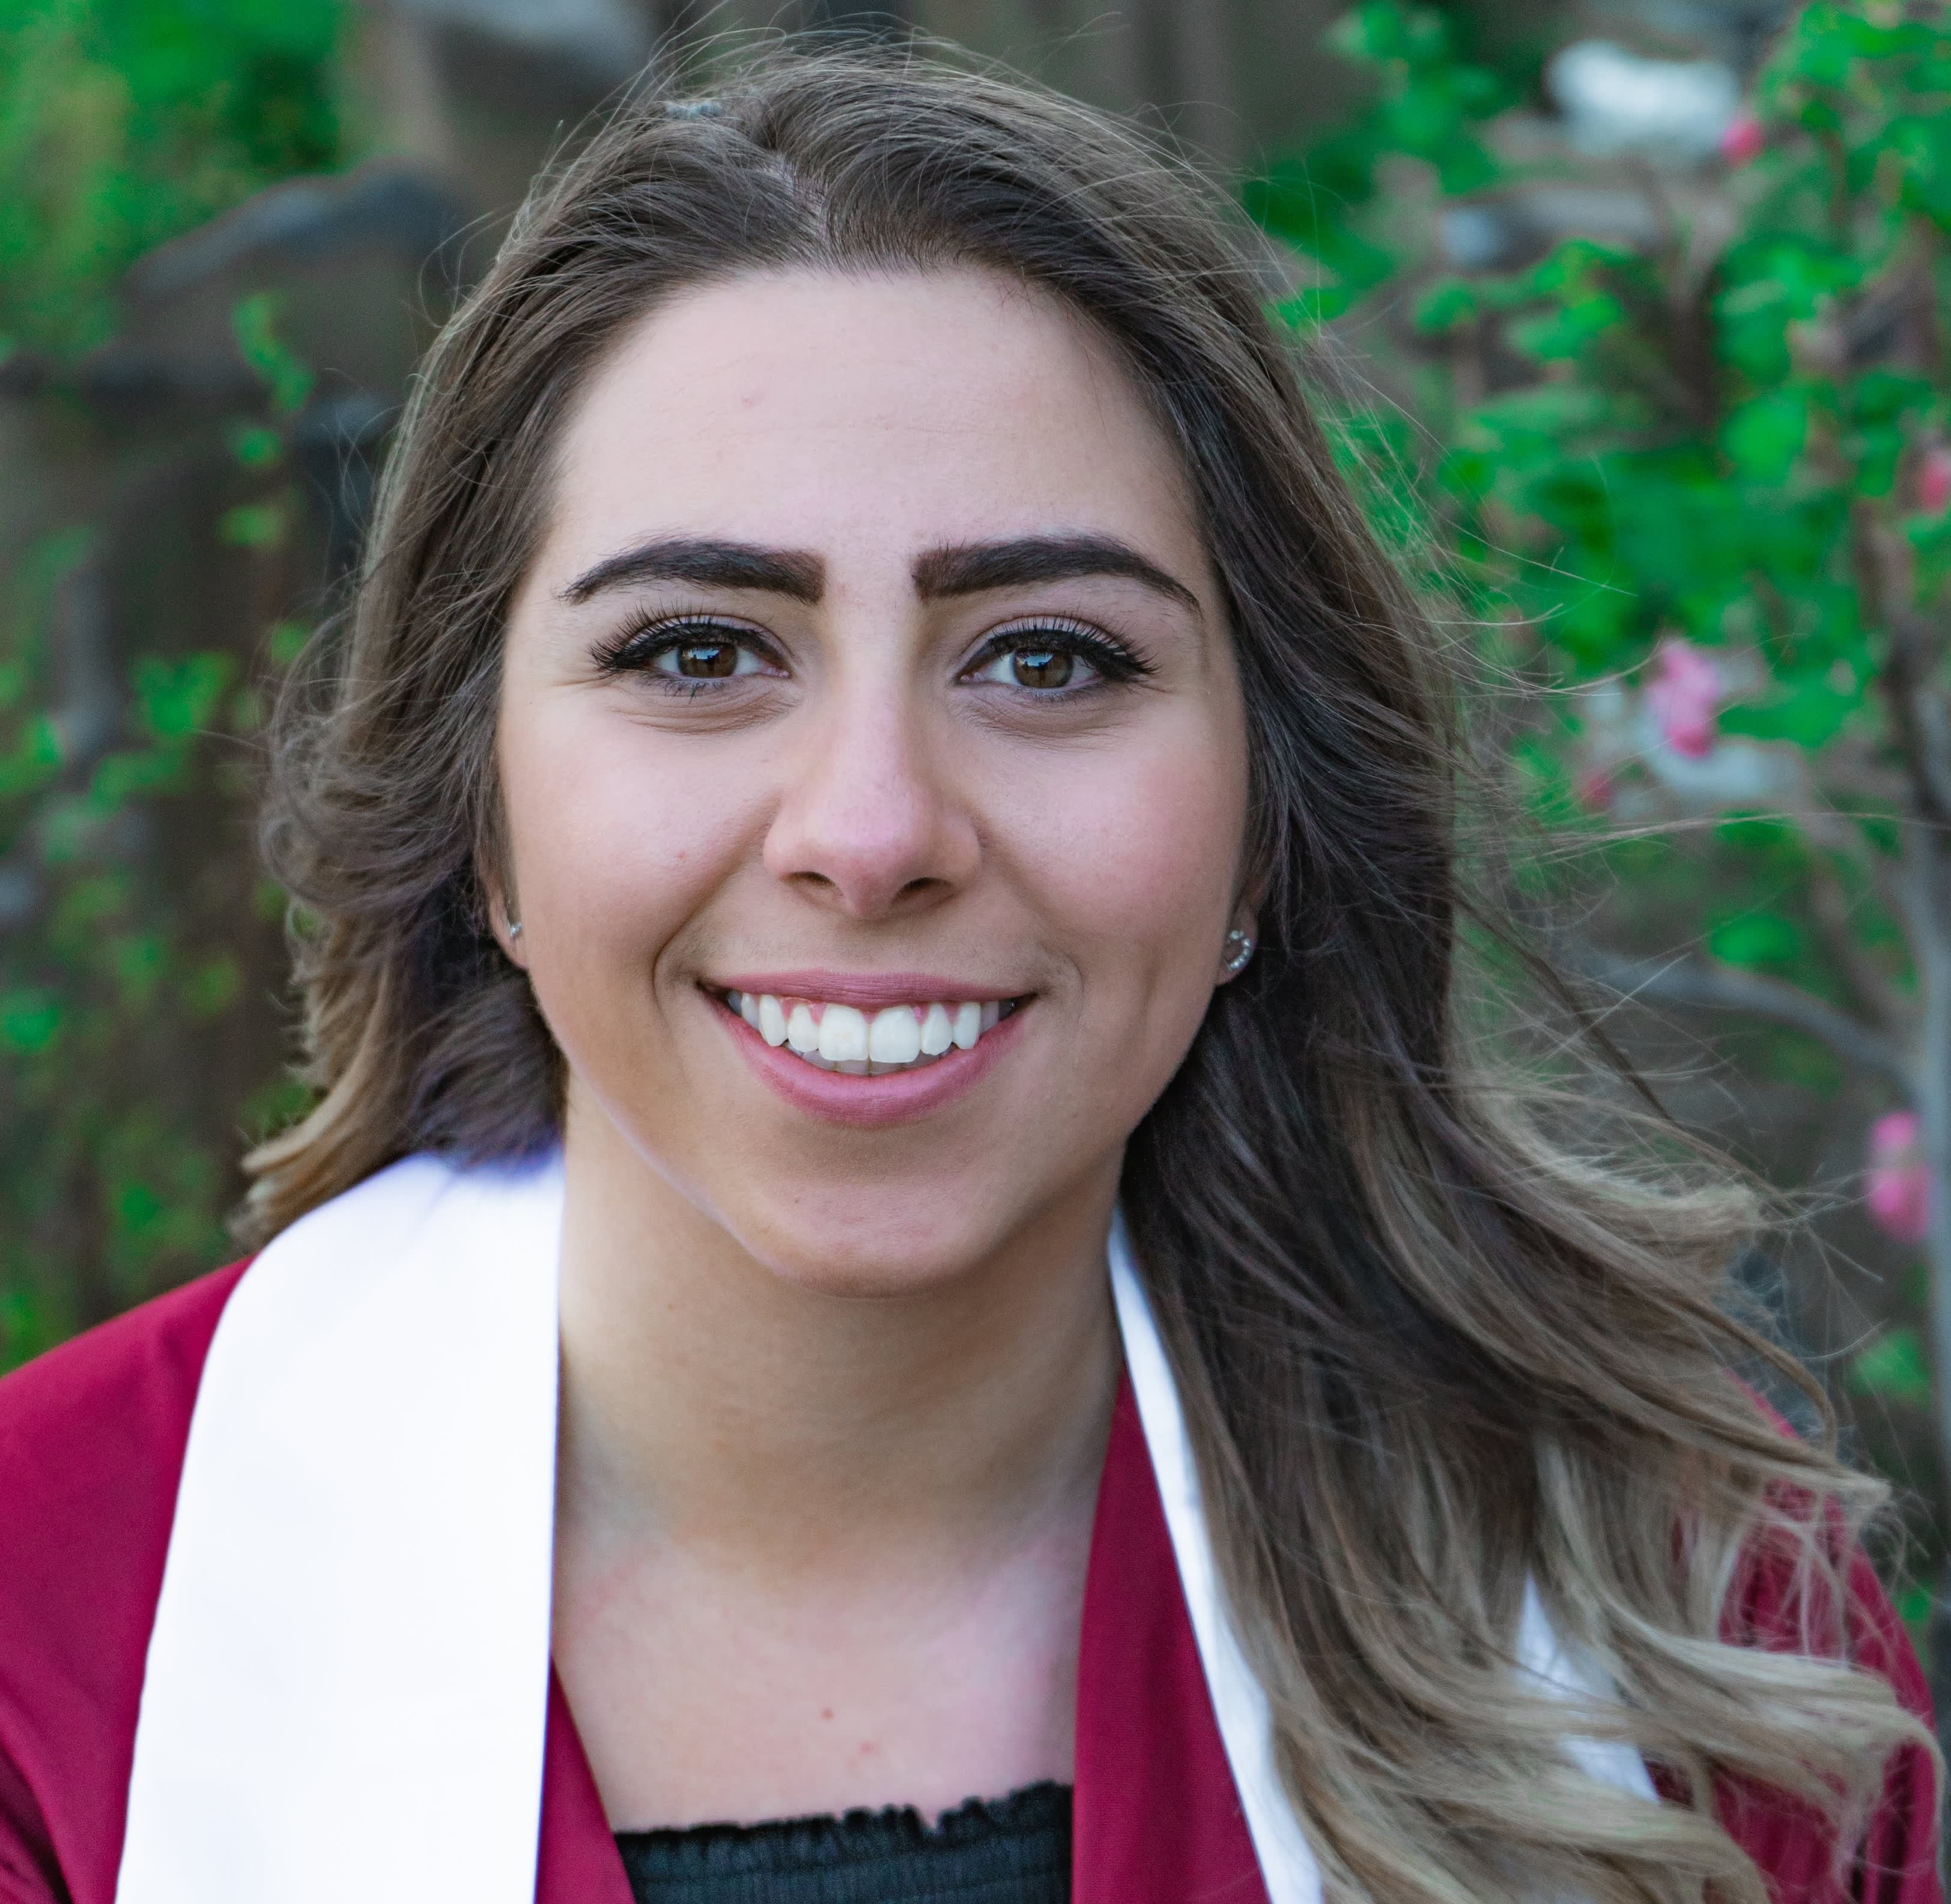 Julie Penwell, 21, plans to pursue a career in financial planning after she graduates from Central Washington University this spring.